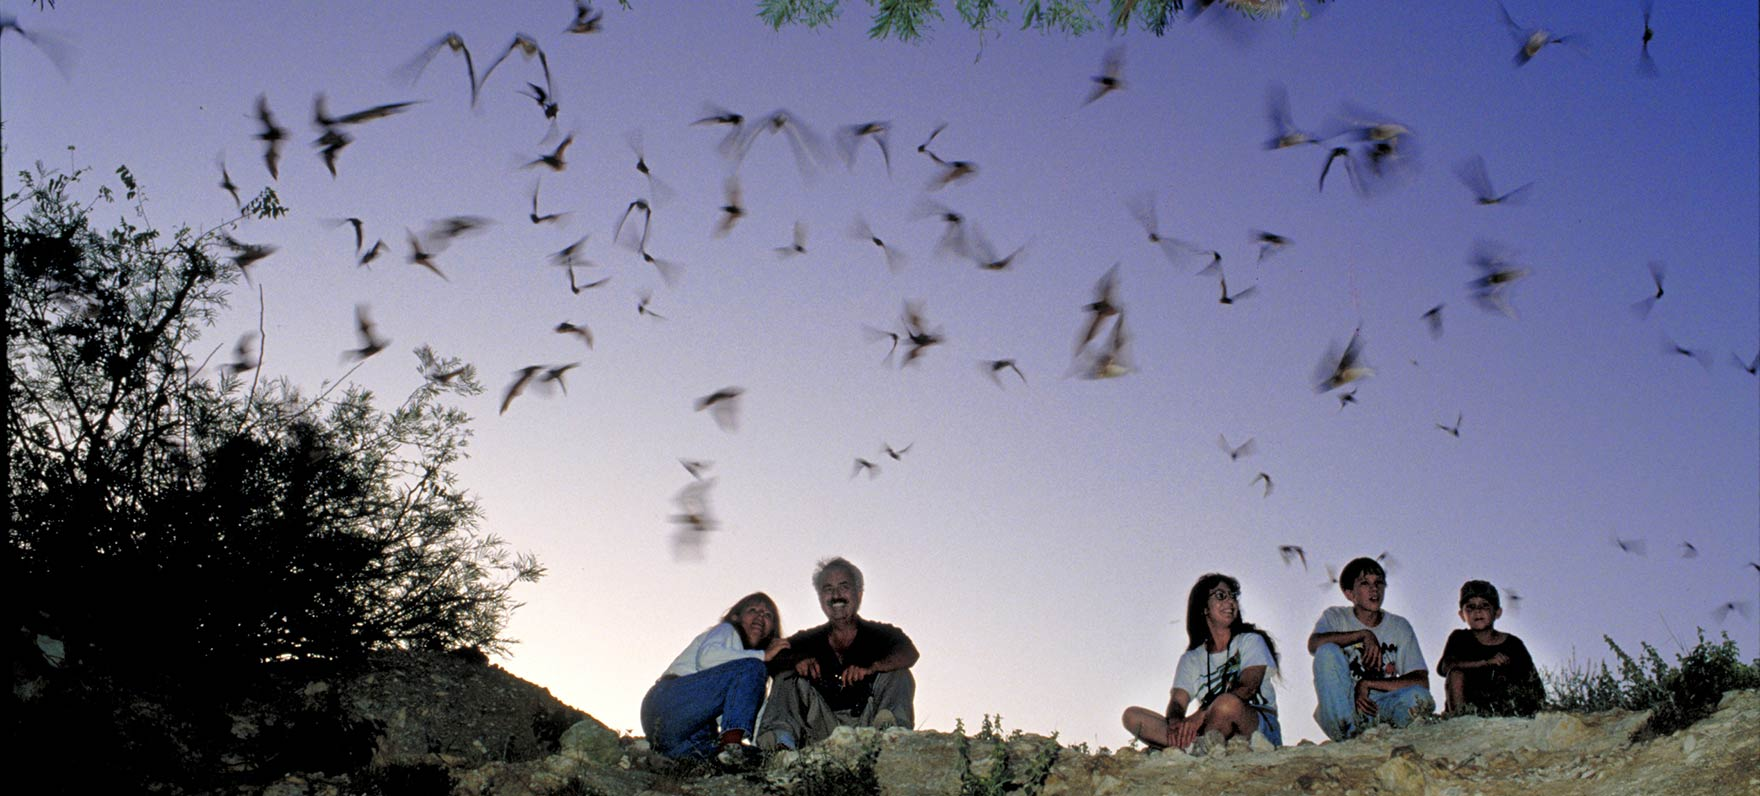 Bats emerge from their roost at Kickapoo Cavern State Park